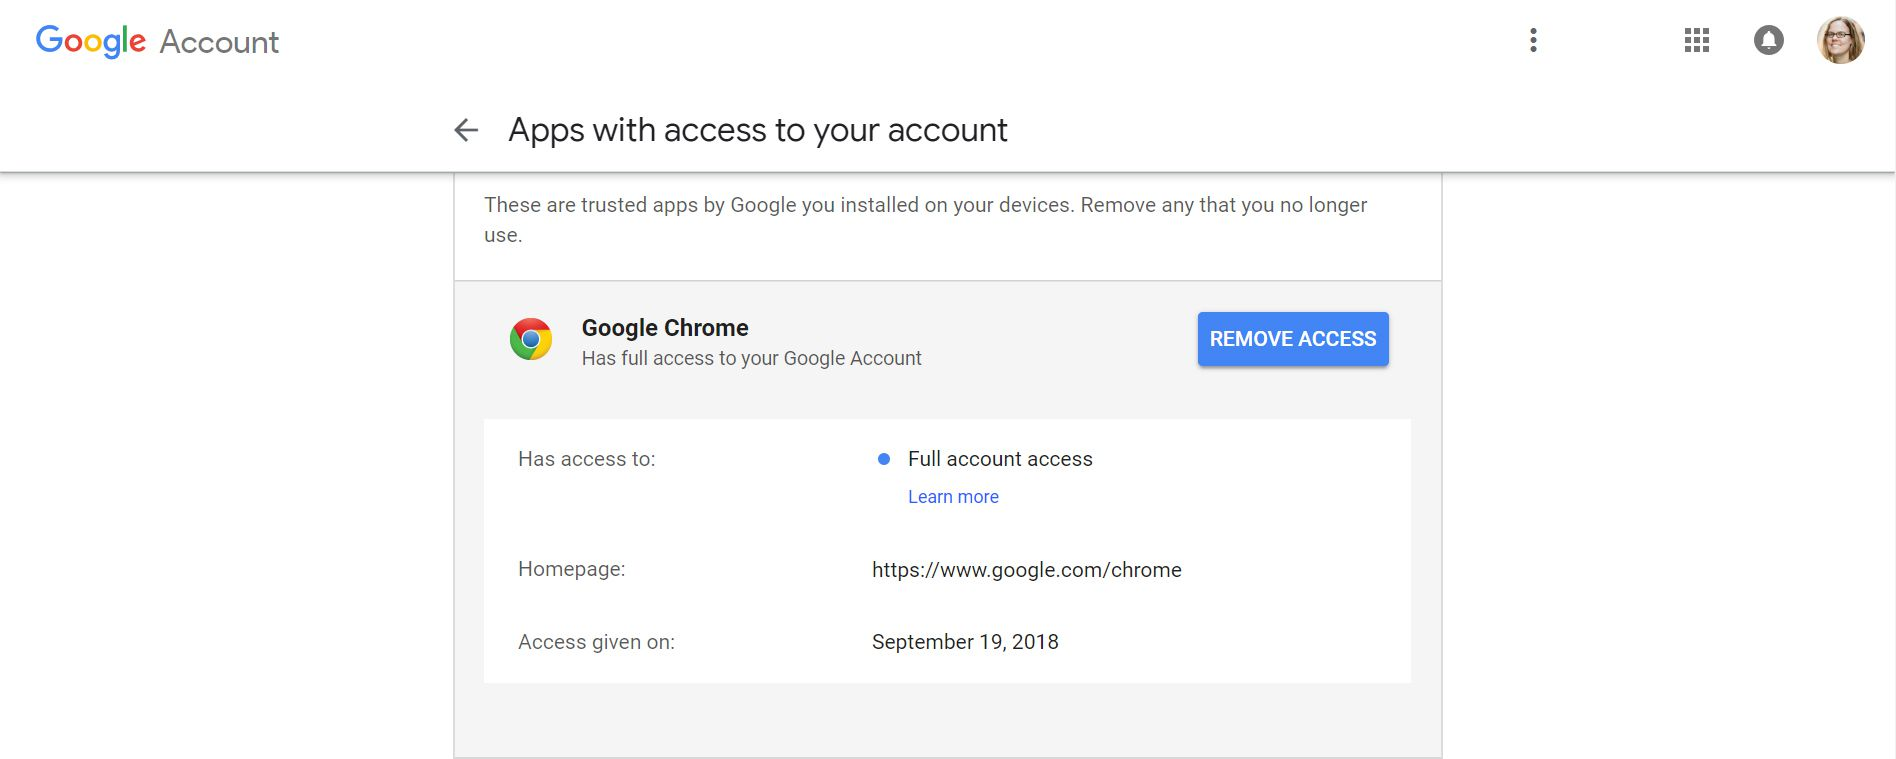 sign out google chrome account